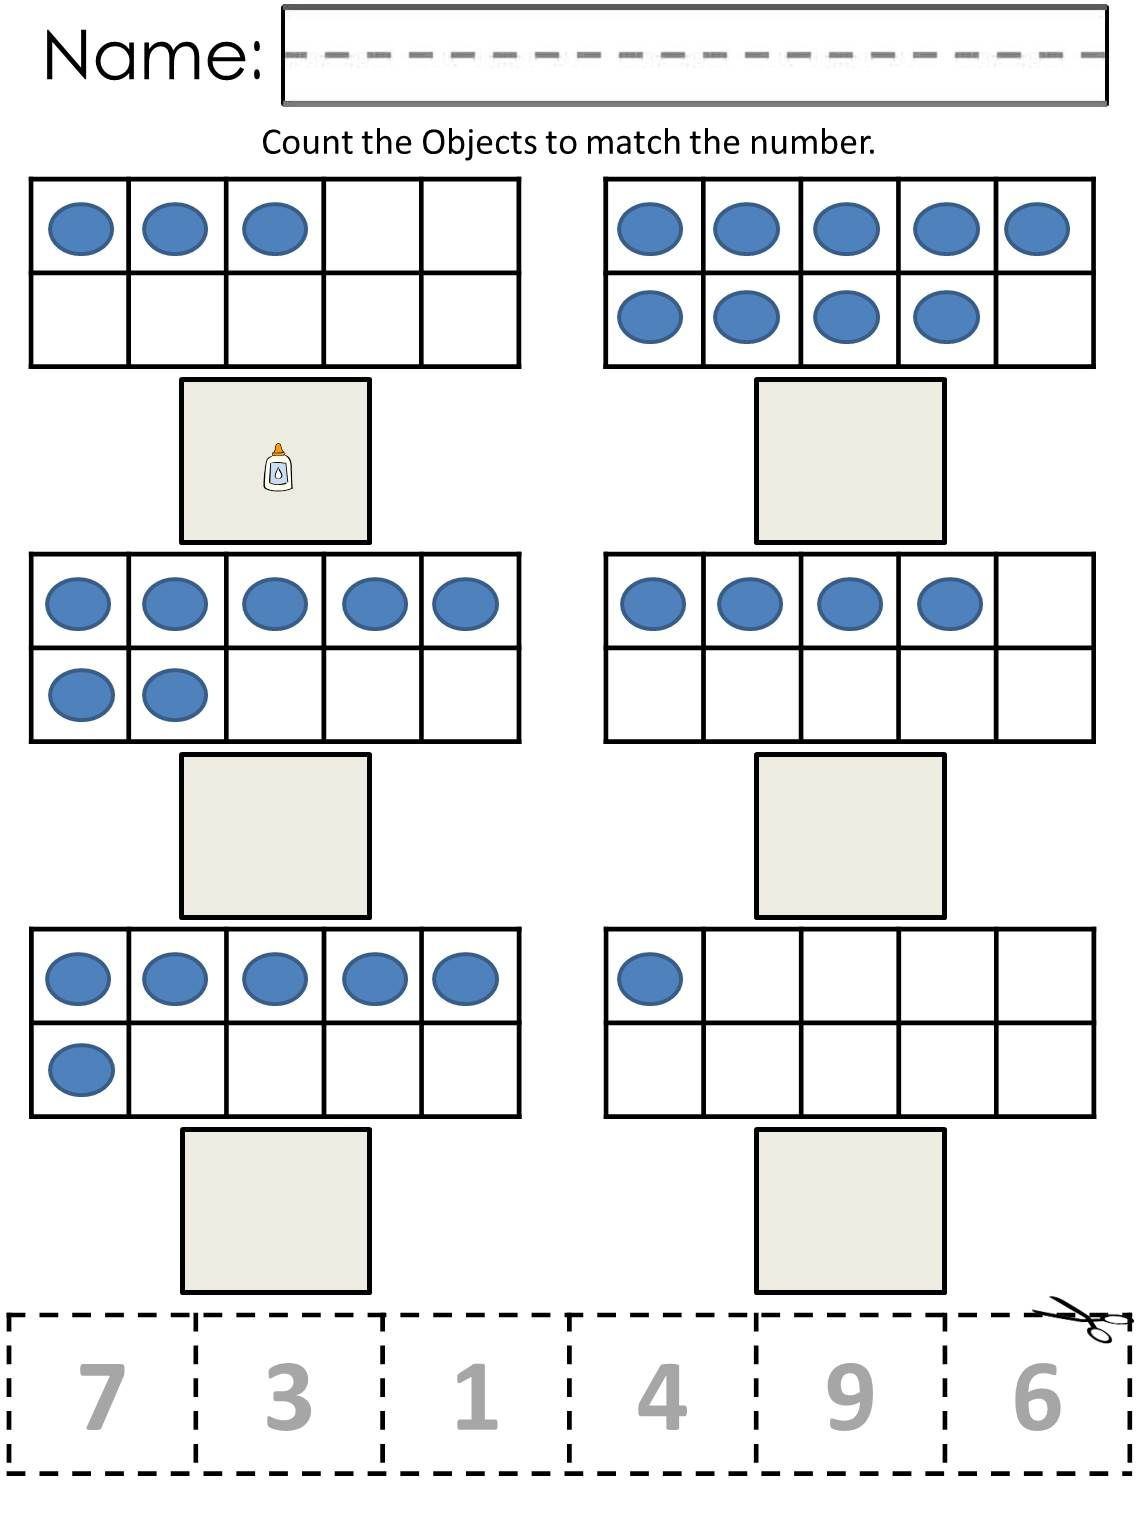 small resolution of Ten Frame Counting Worksheets Now Available at www.AutismComplete.com   Math  worksheets